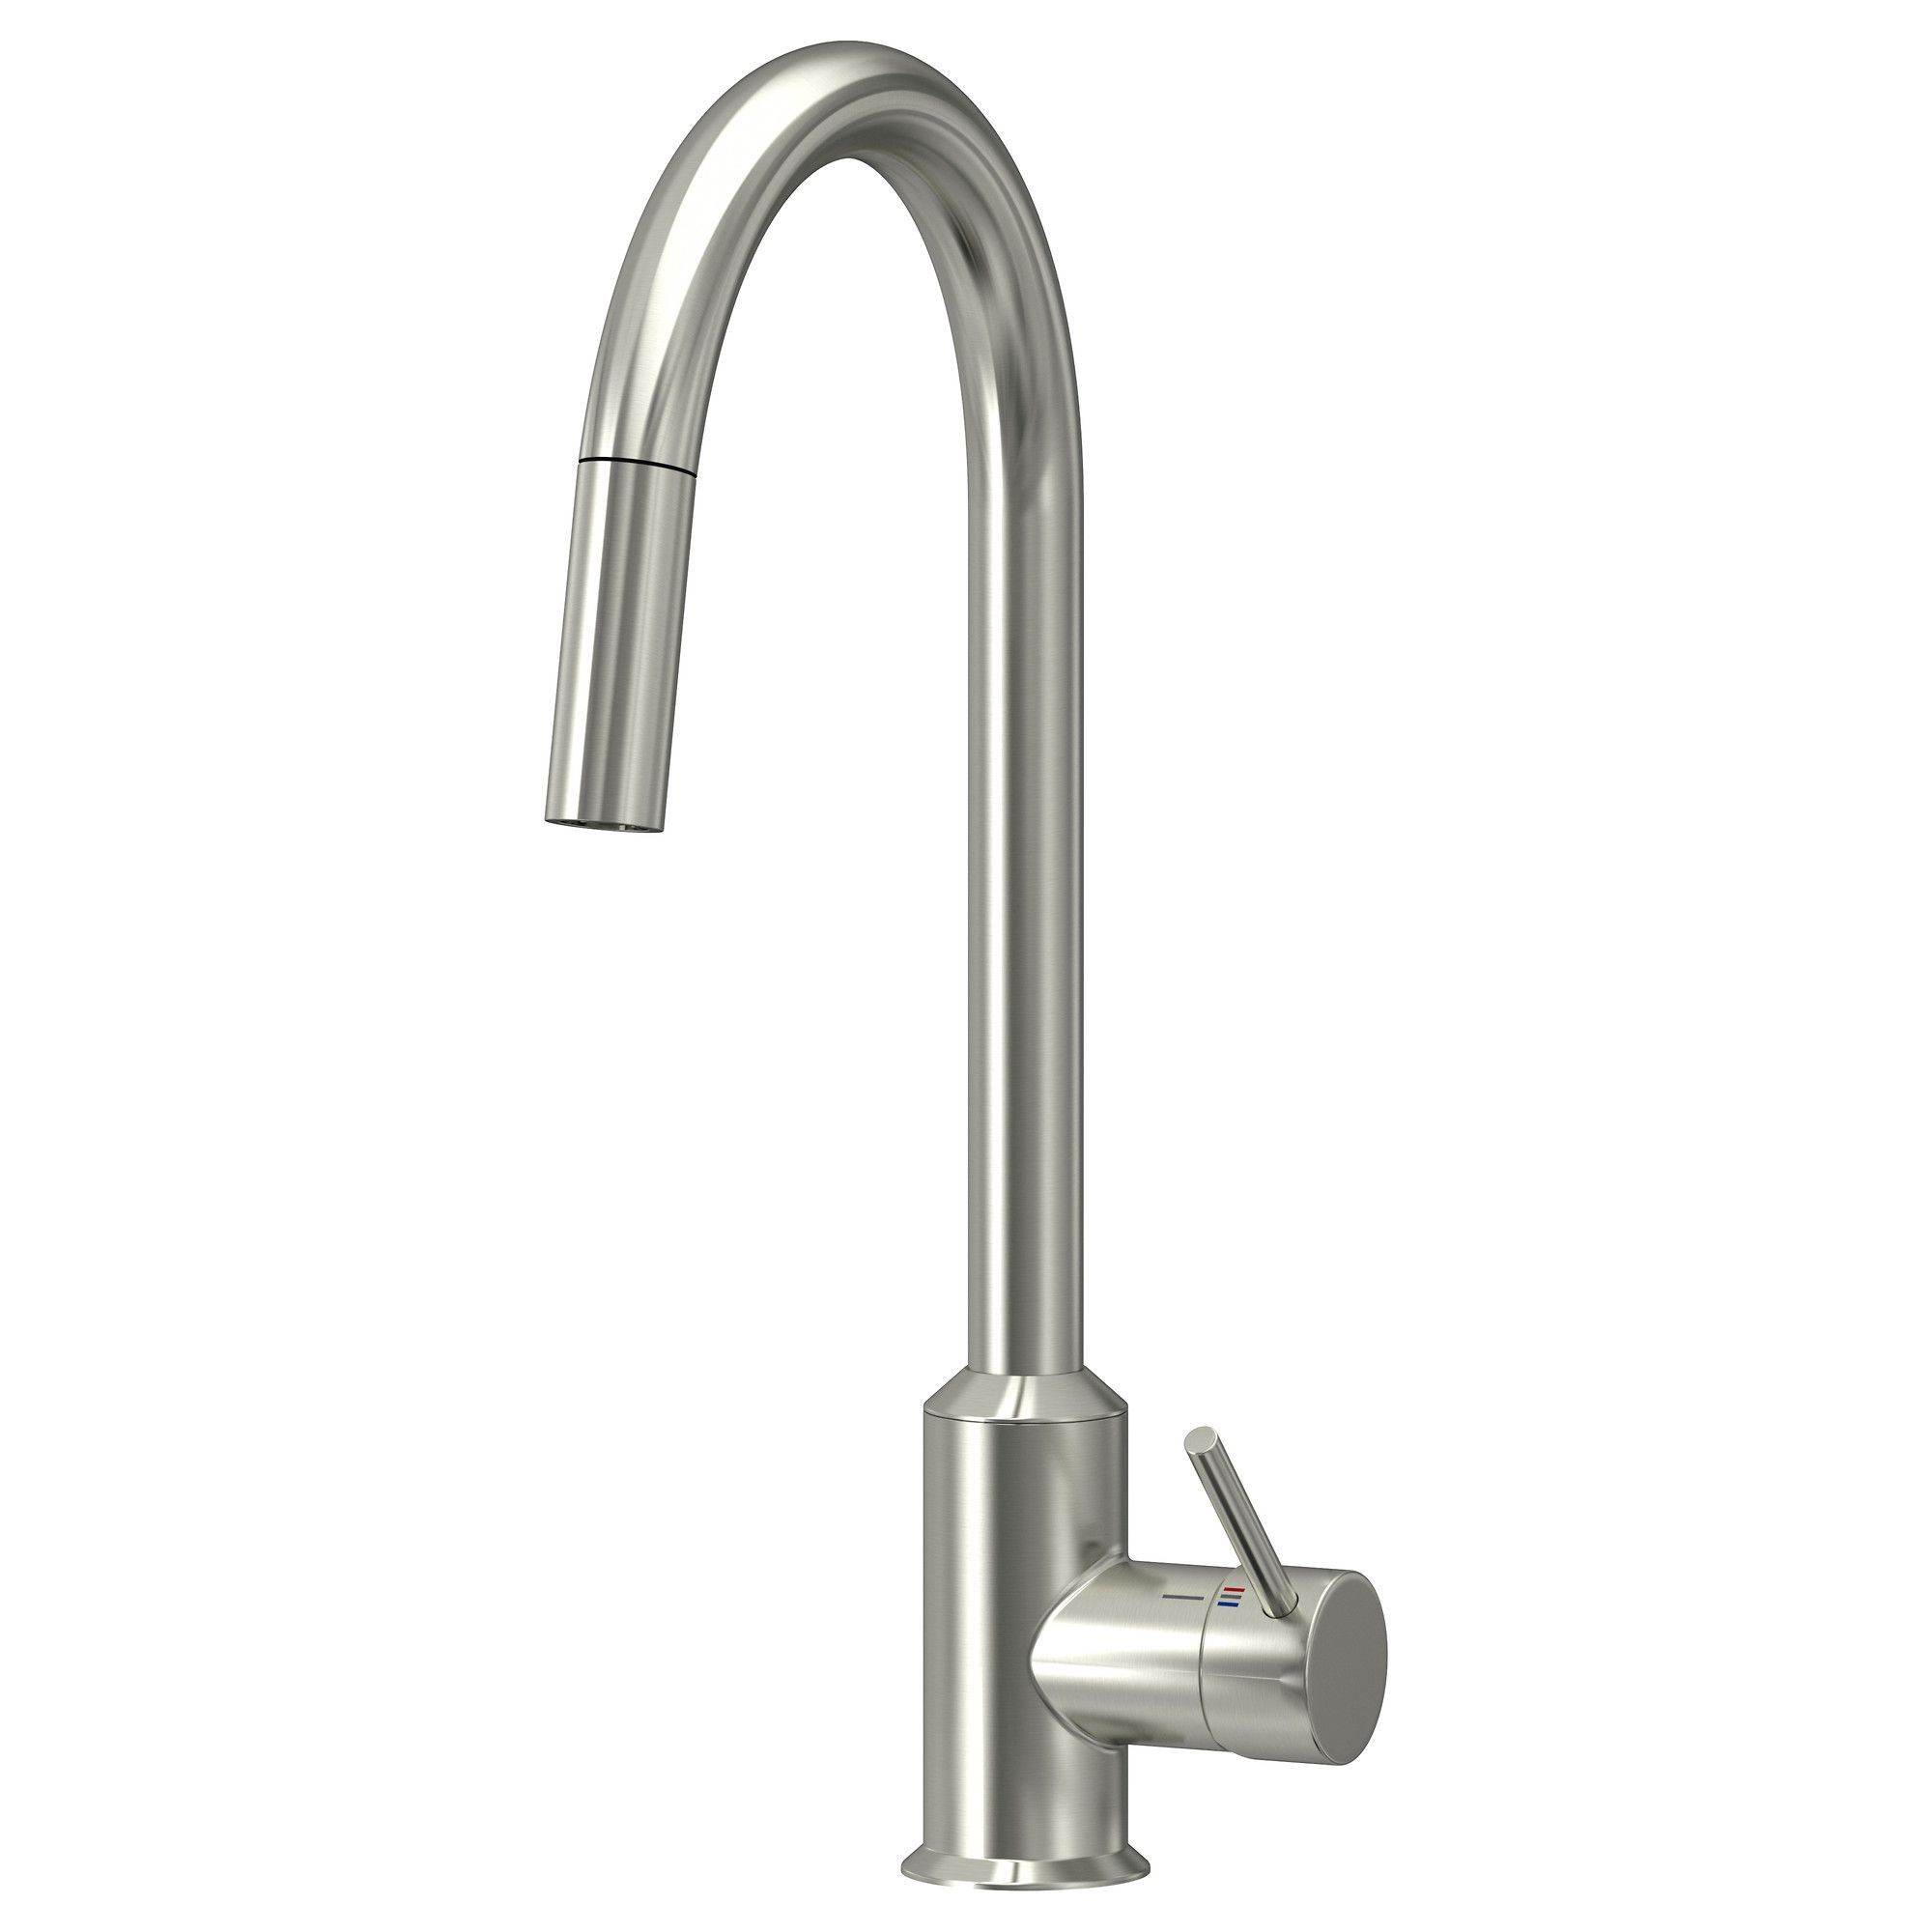 Ringsk r kitchen faucet with pull out spout ikea for Best kitchen sinks and faucets